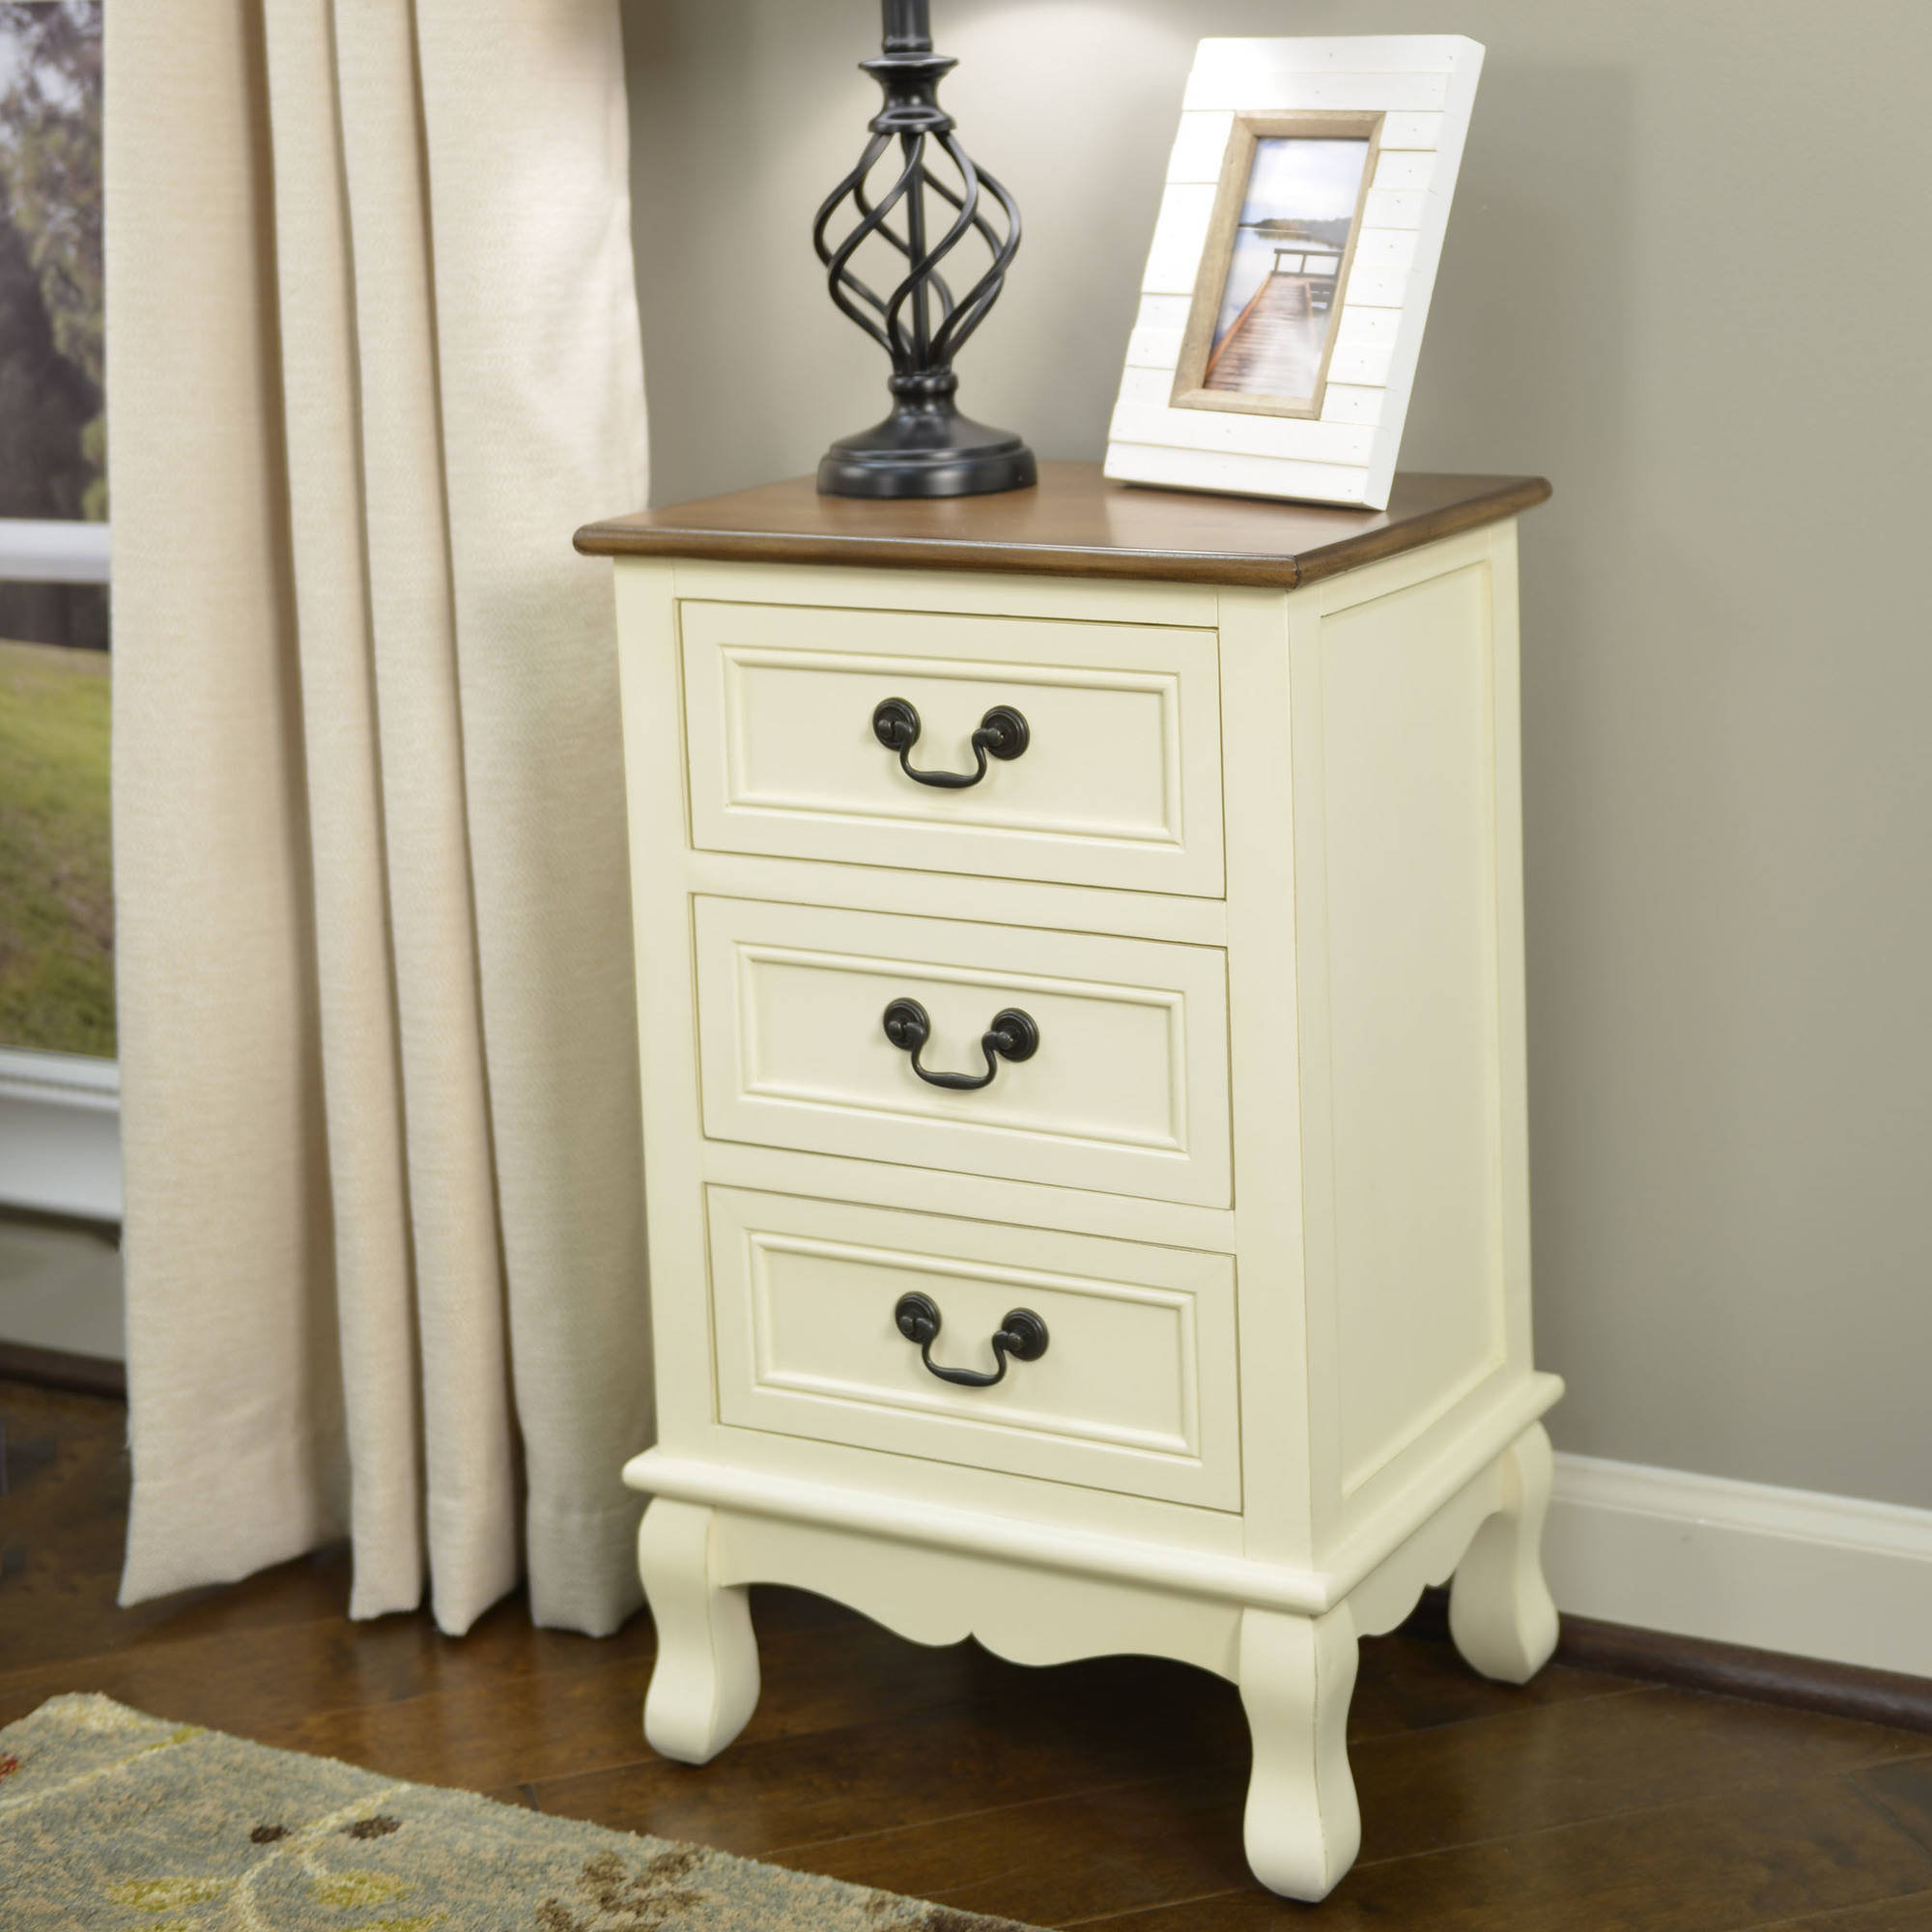 better homes and gardens two tone drawer accent table multiple end with drawers colors kohls jewelry coupon badcock furniture locations small side target dog crates lockable